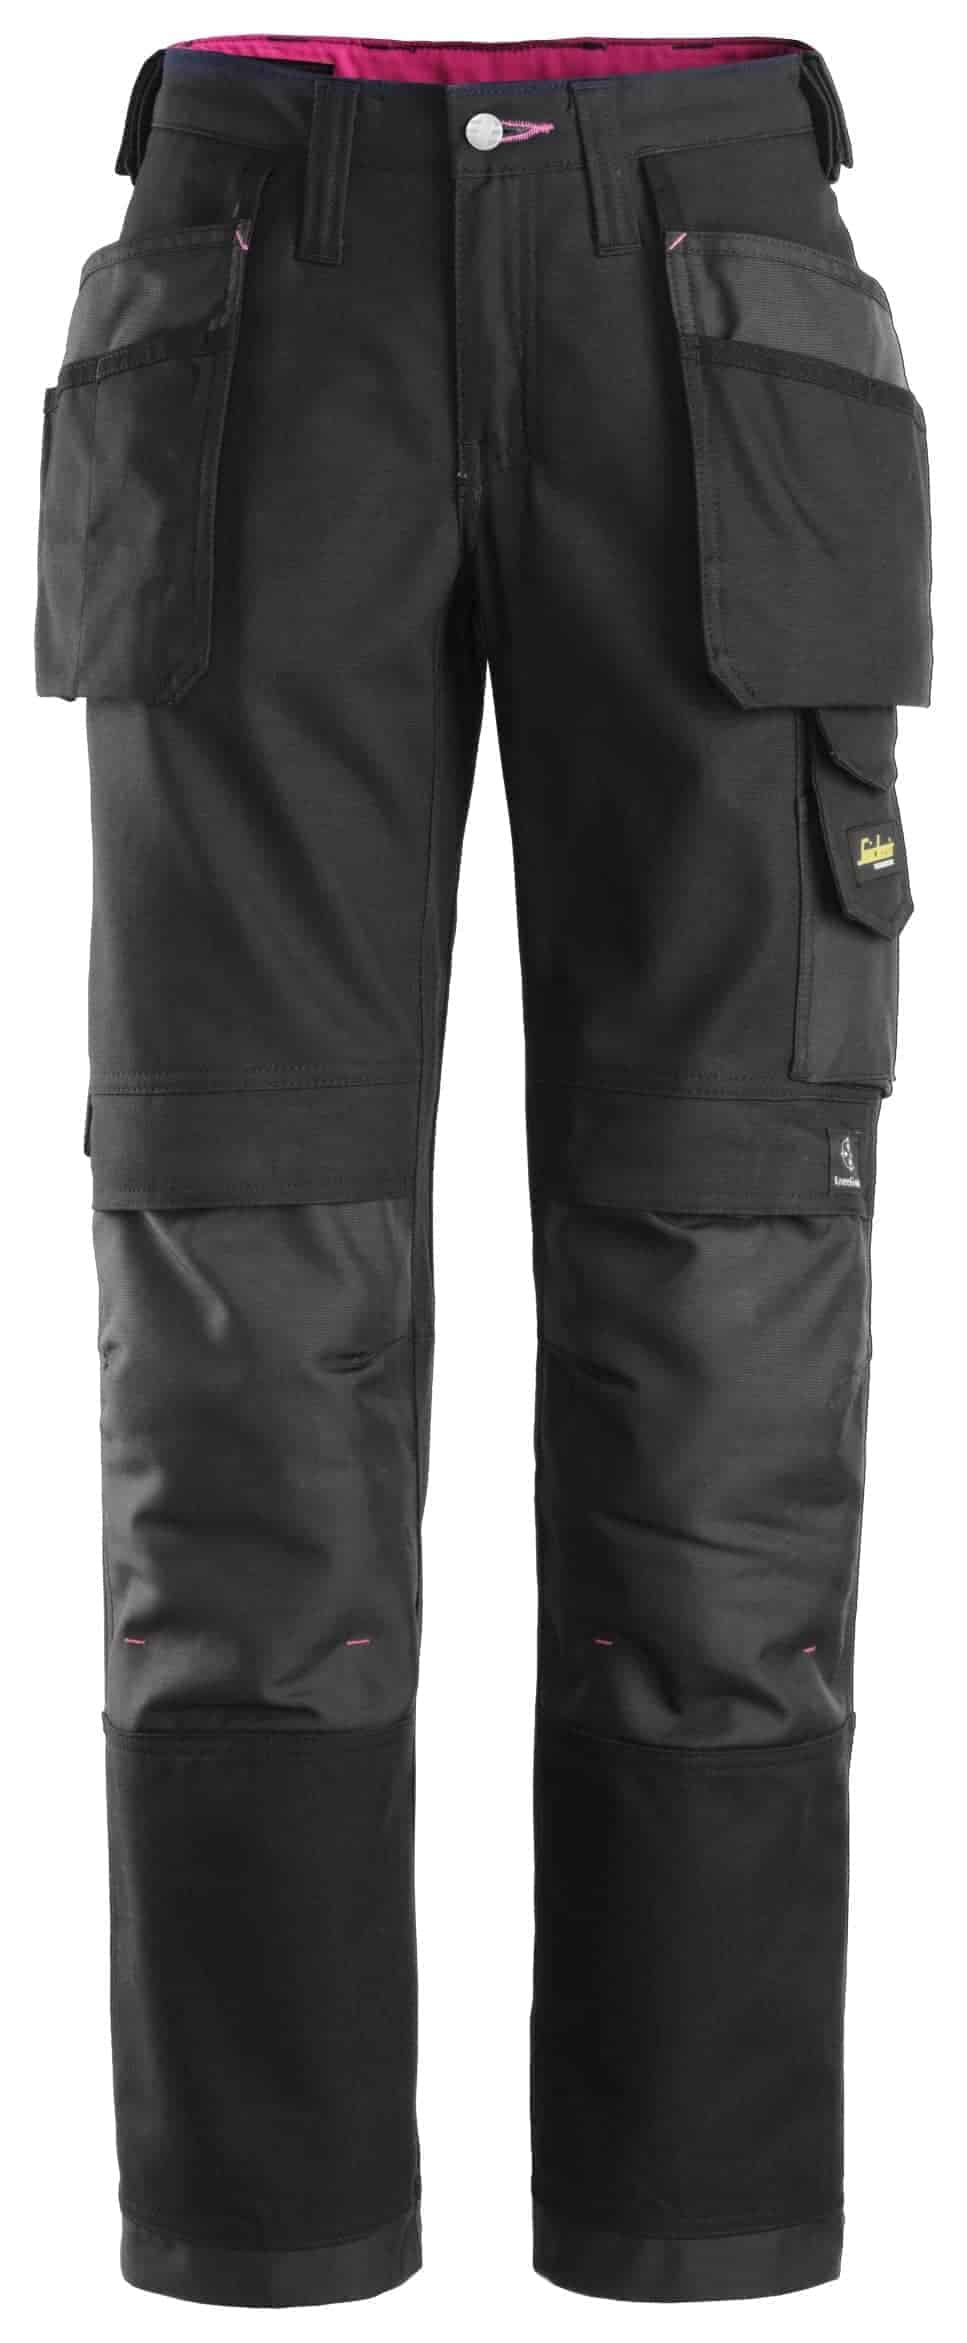 3714 WORK TROUSERS